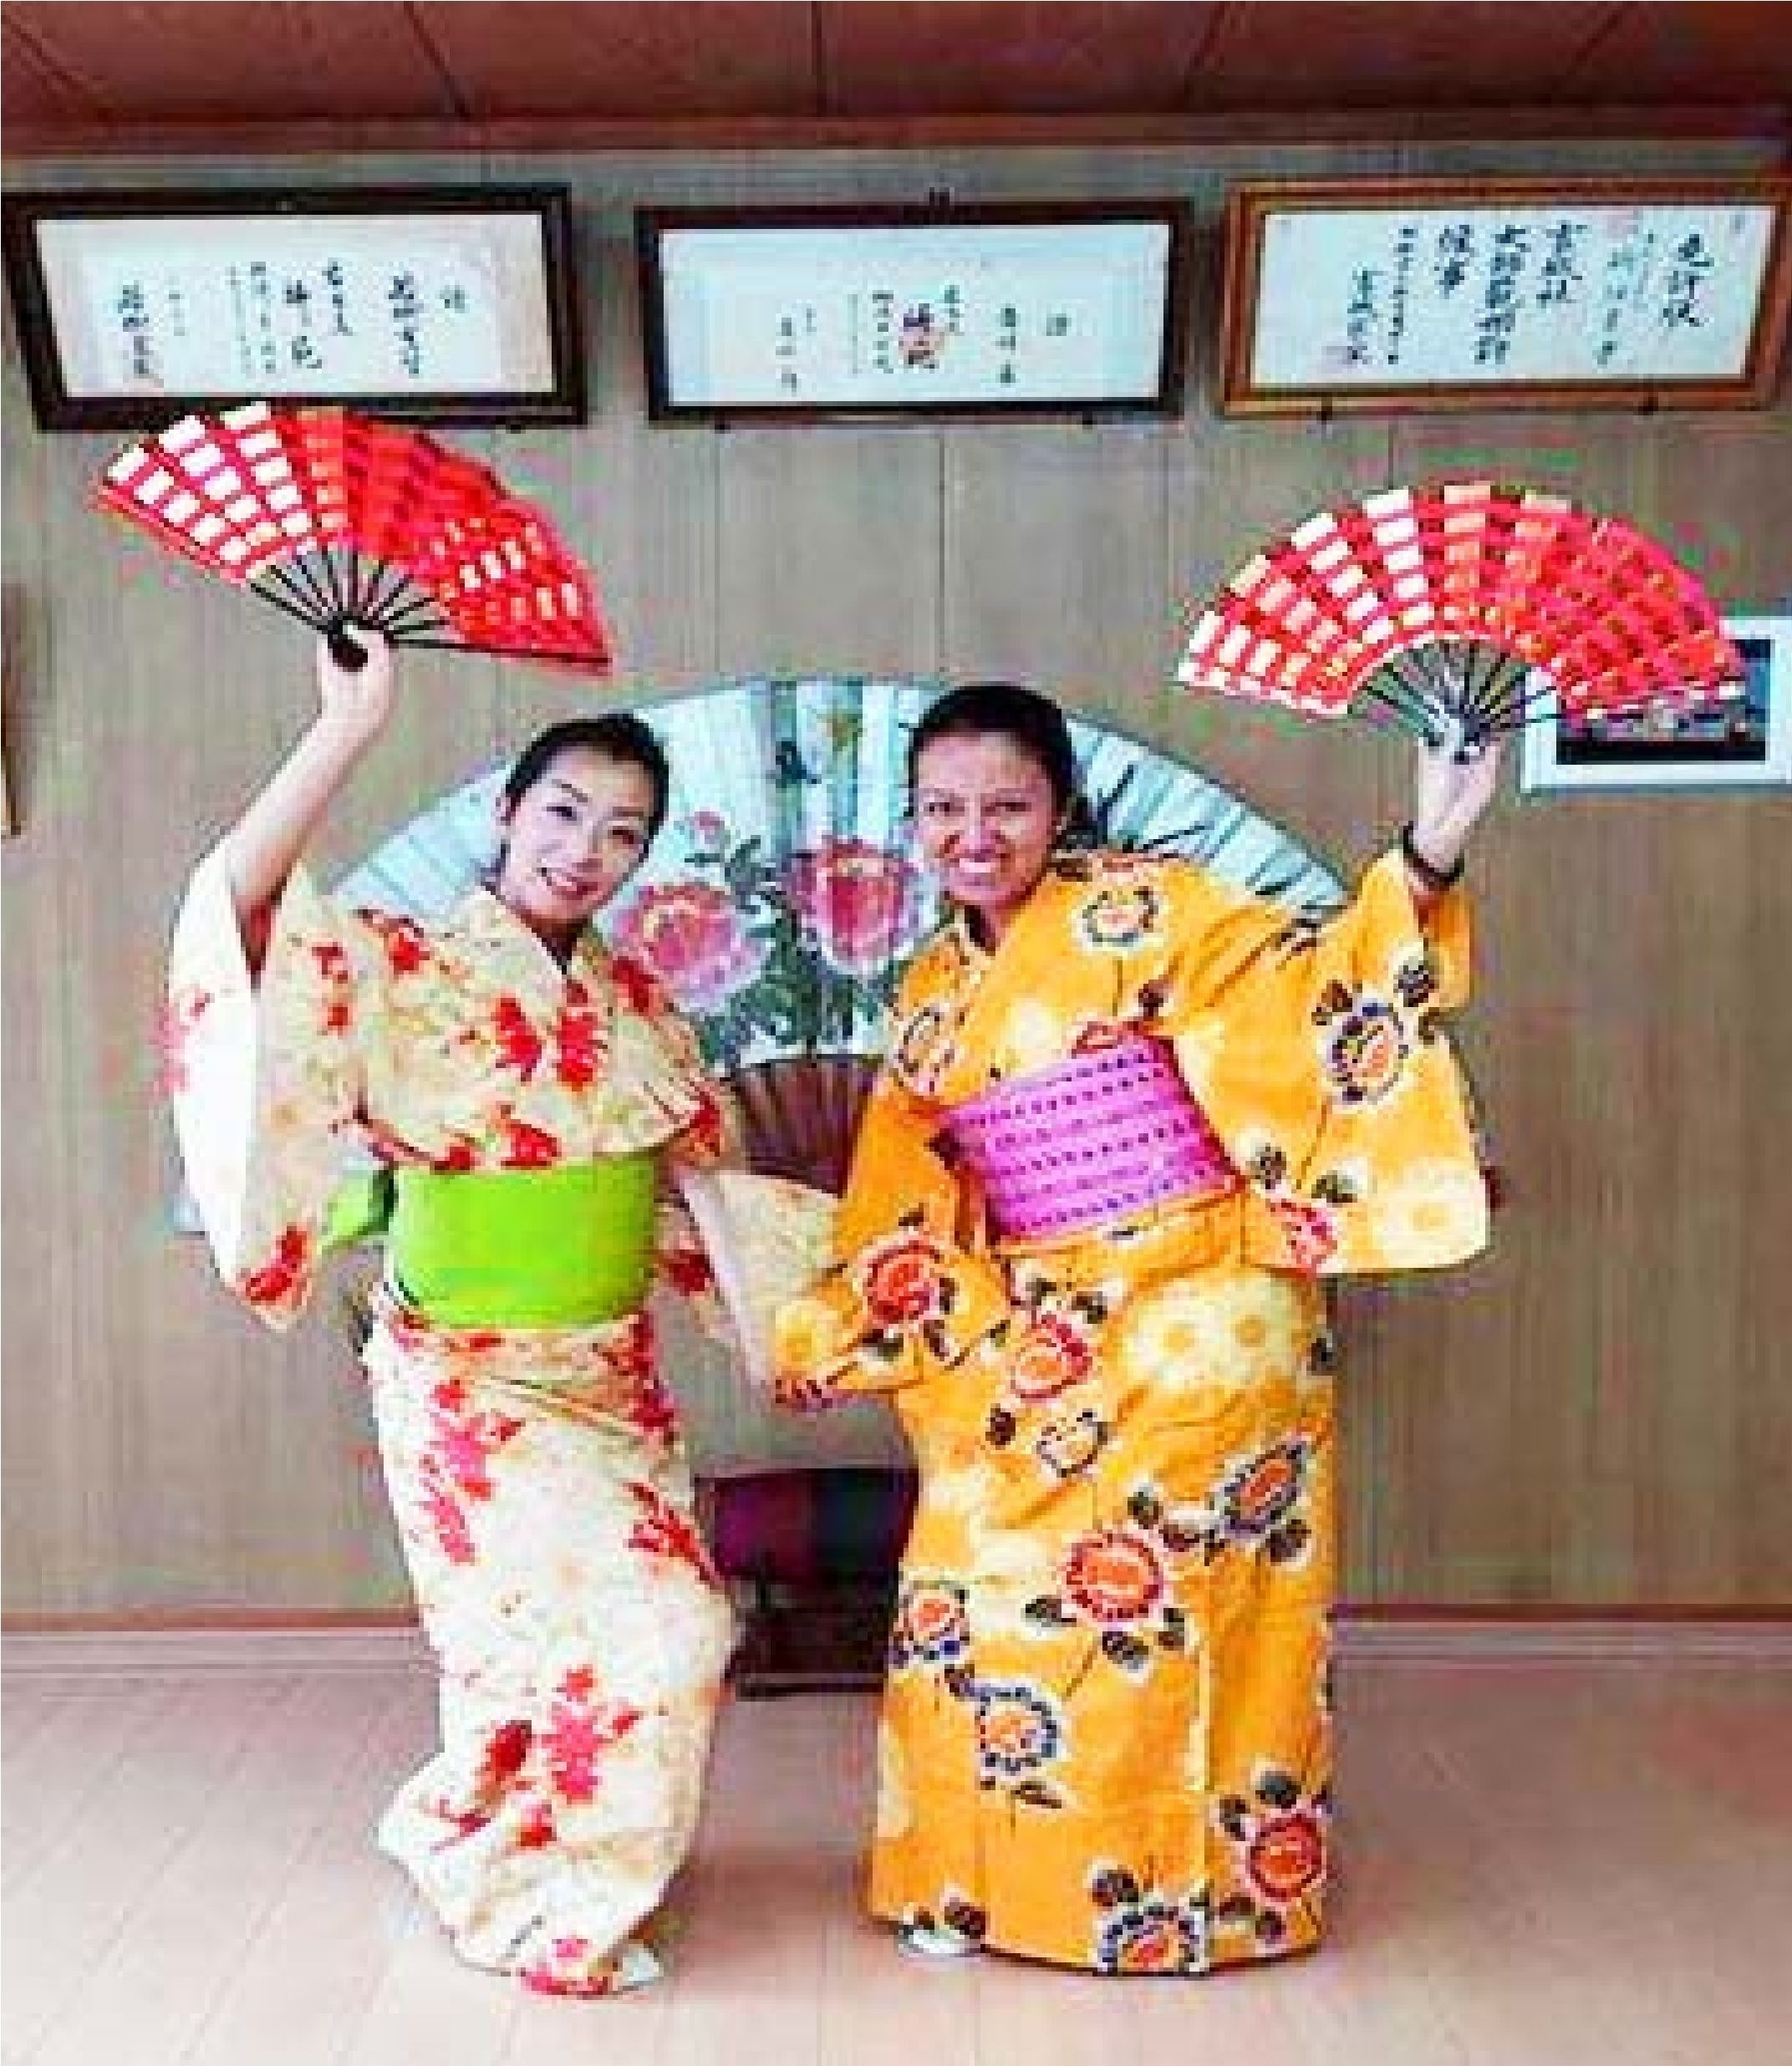 Enjoy Kimono Dressing and Traditional Japanese Dance